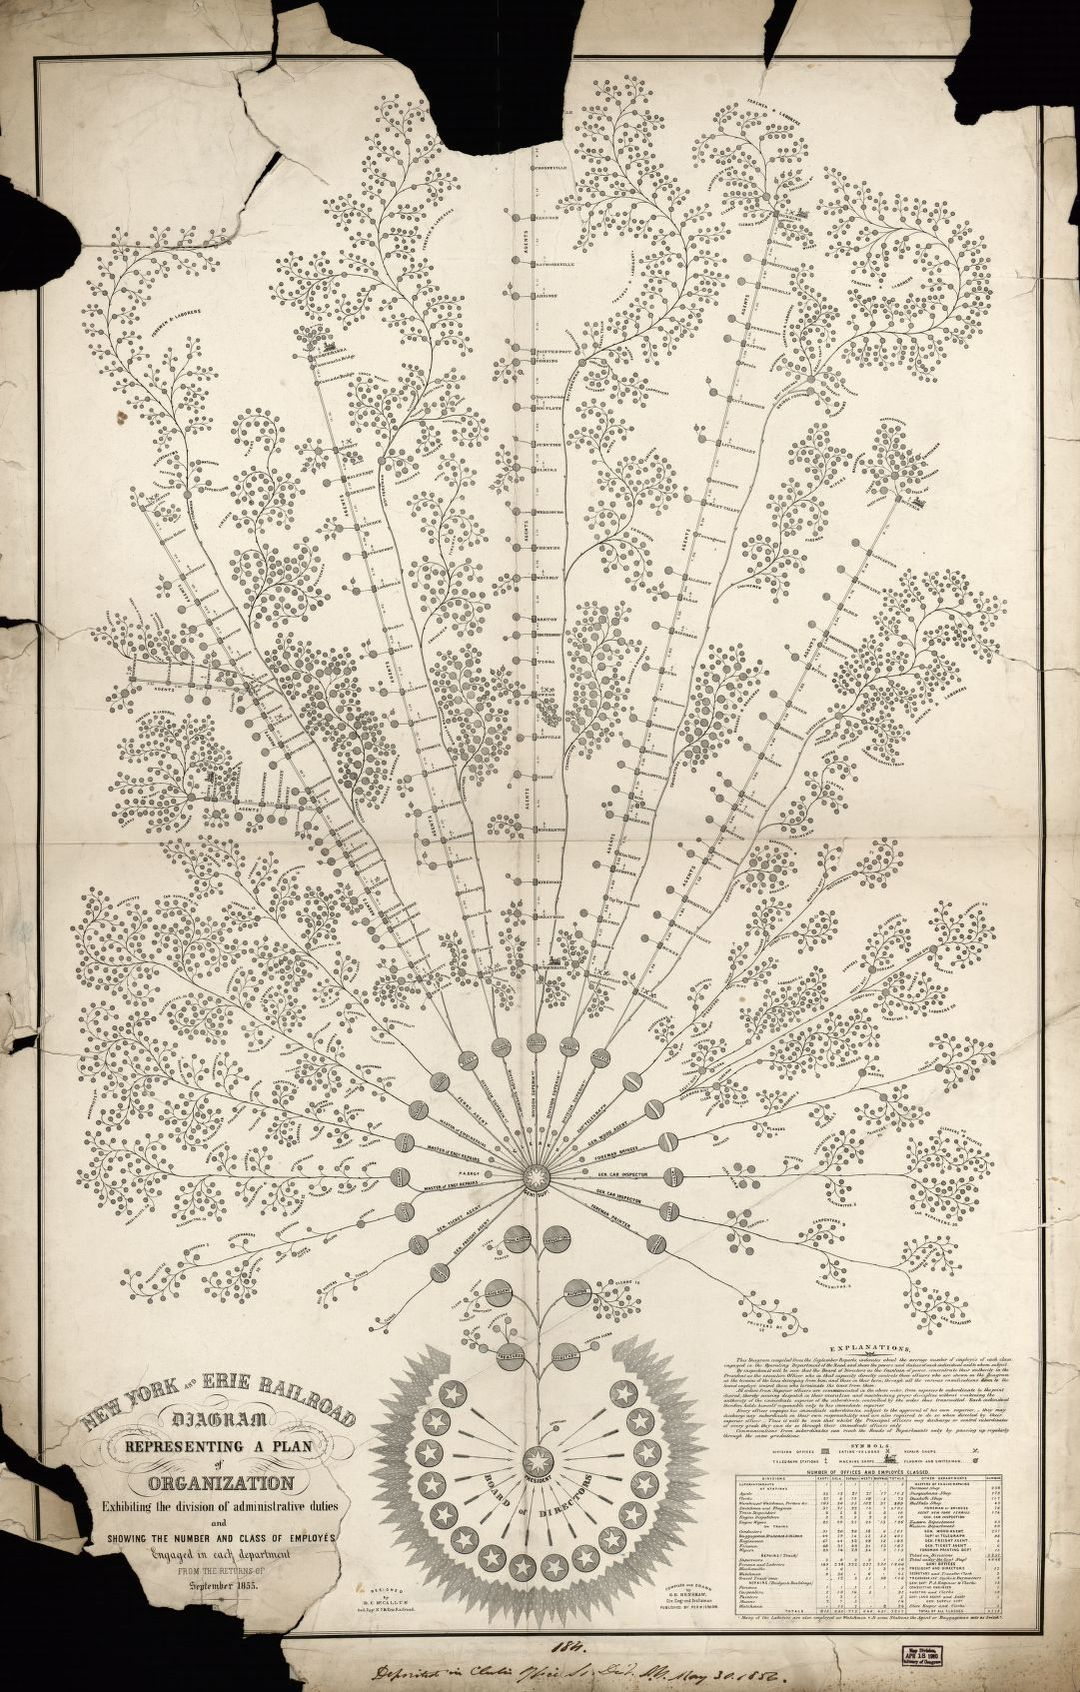 hight resolution of map new york and erie railroad diagram representing a plan of organization exhibiting the division of academic duties and showing the number and class of